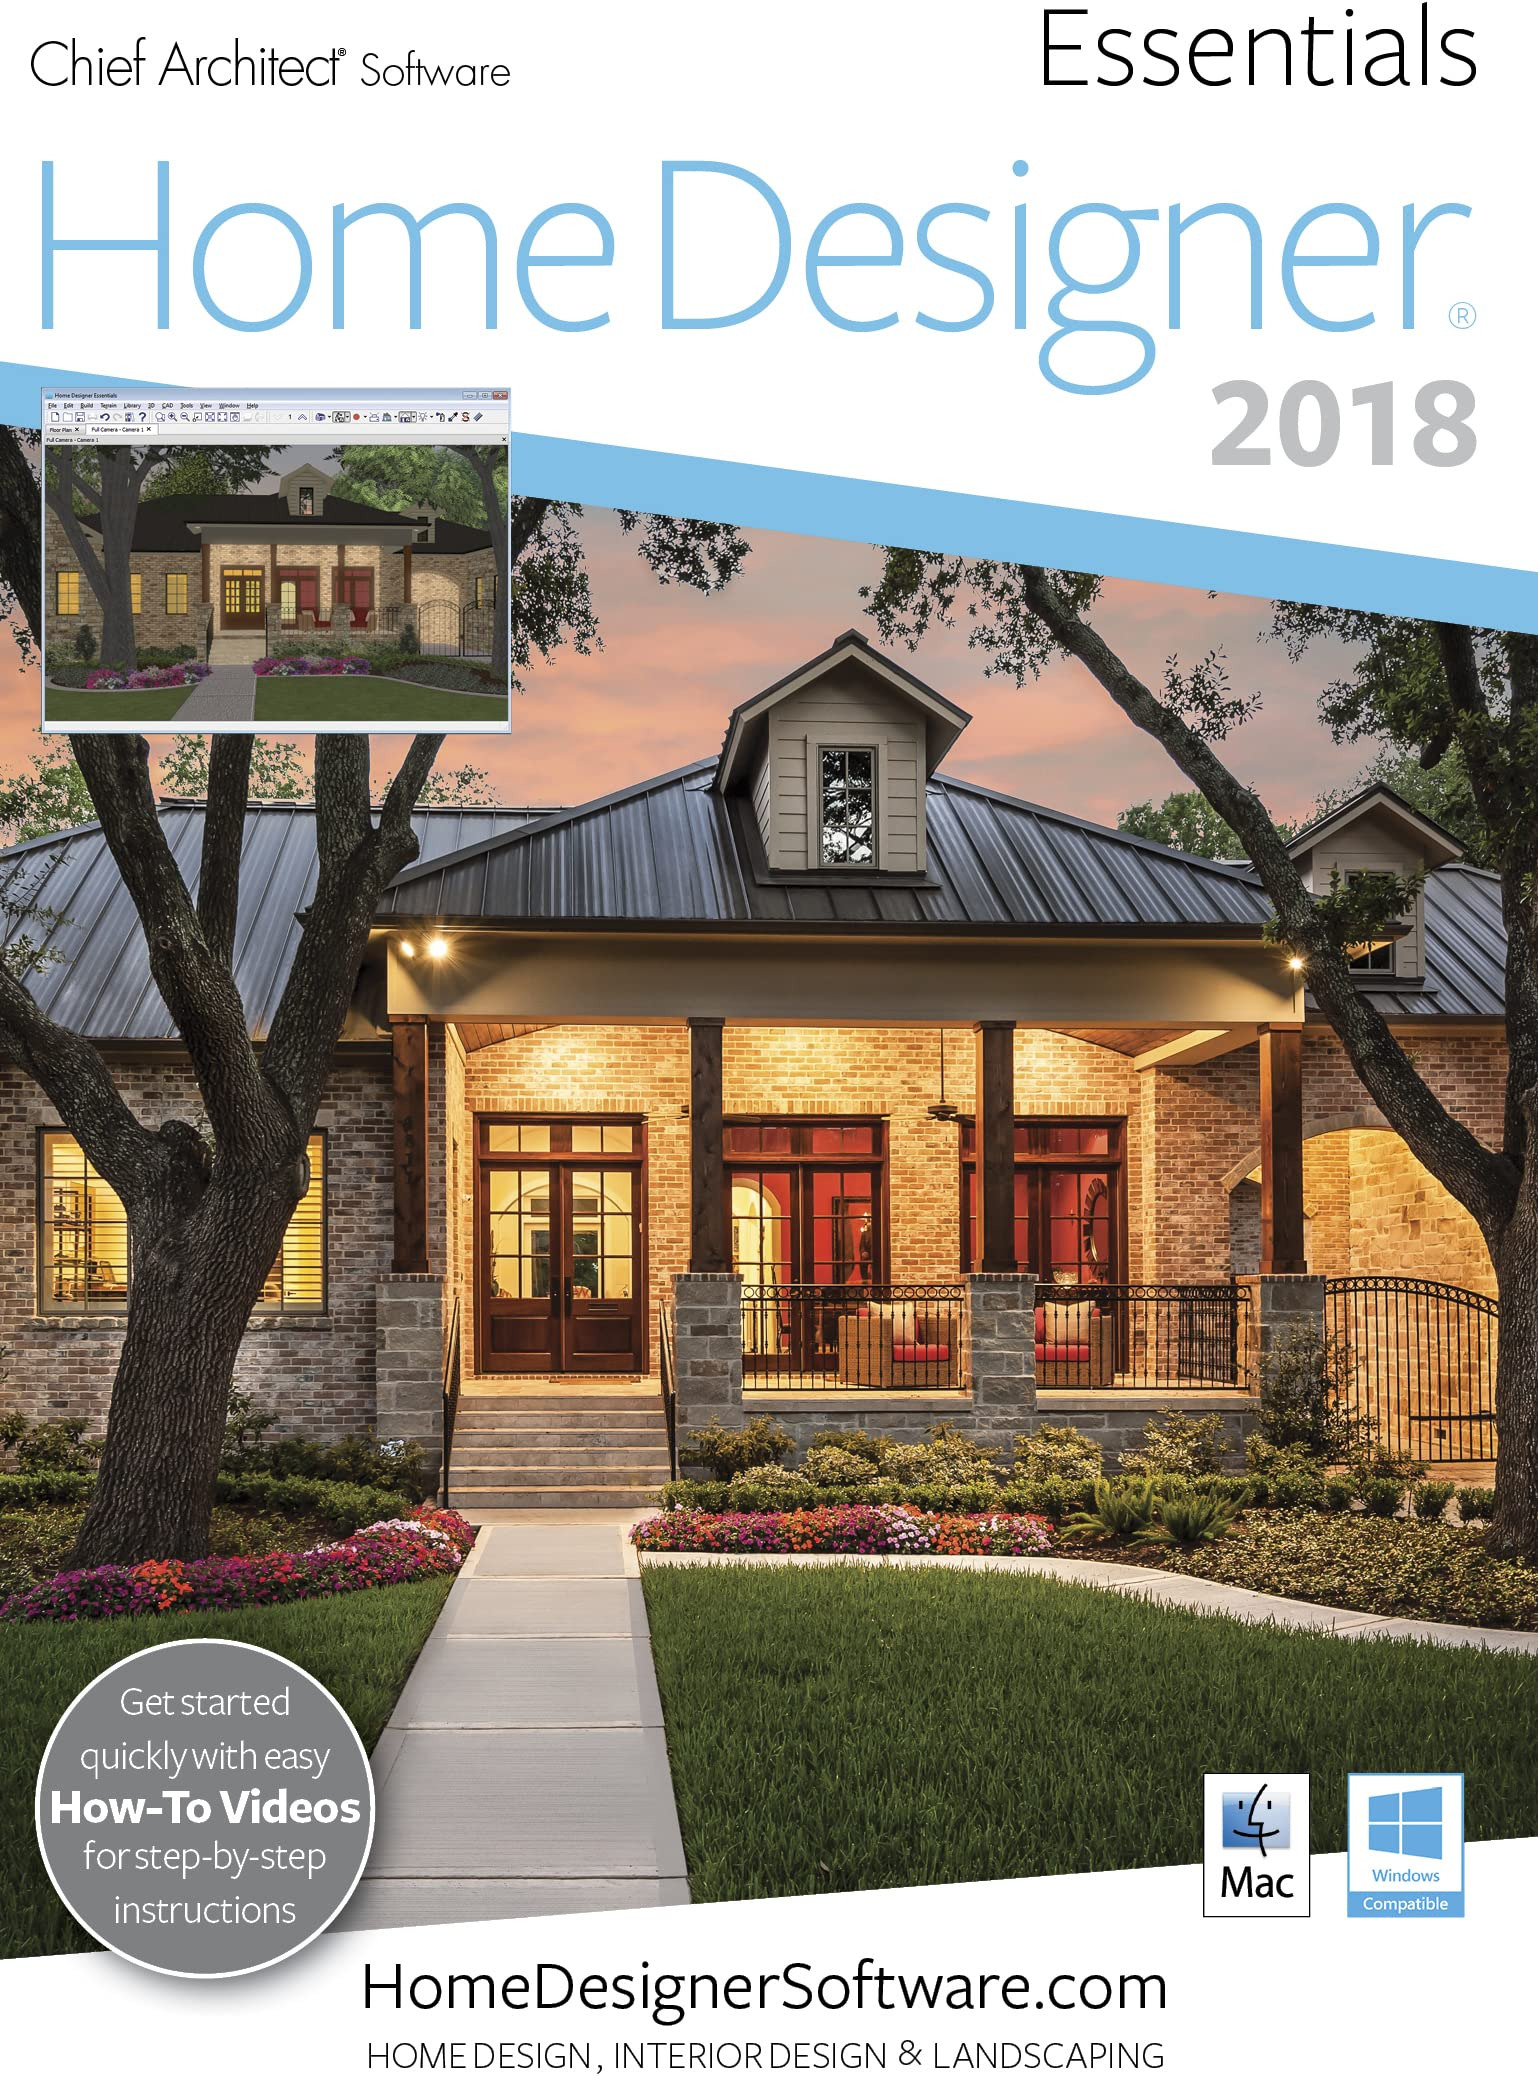 House Plan Design software for Mac Awesome Amazon Home Designer Essentials 2018 Mac Download